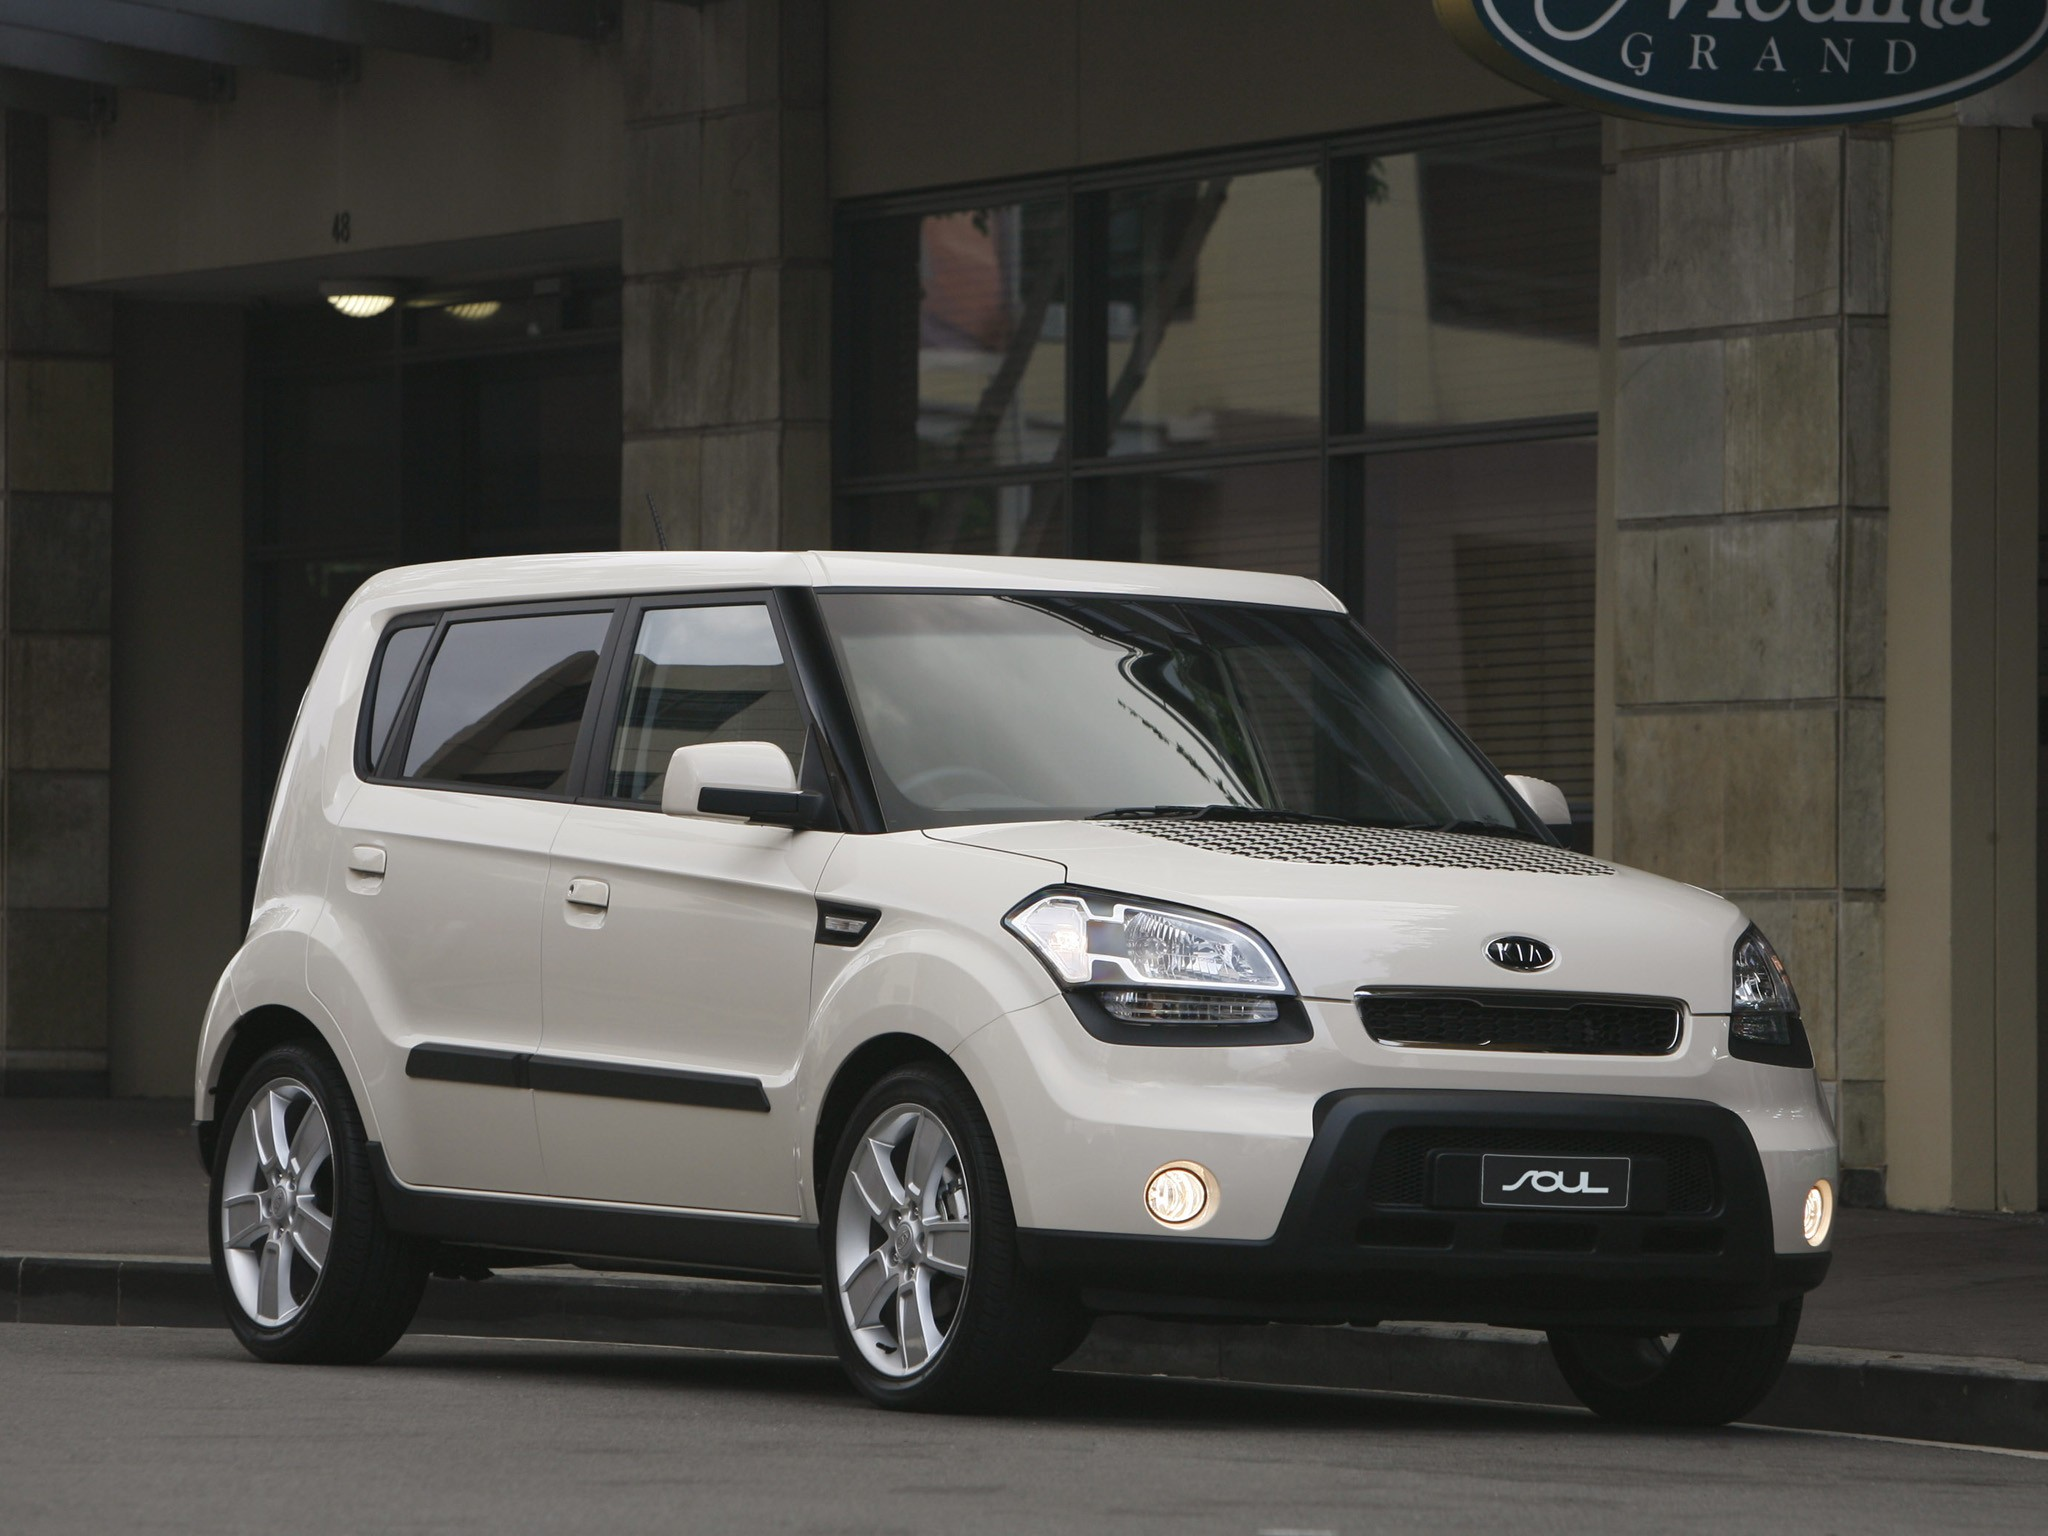 kia soul specs 2008 2009 2010 2011 2012 2013 autoevolution. Black Bedroom Furniture Sets. Home Design Ideas